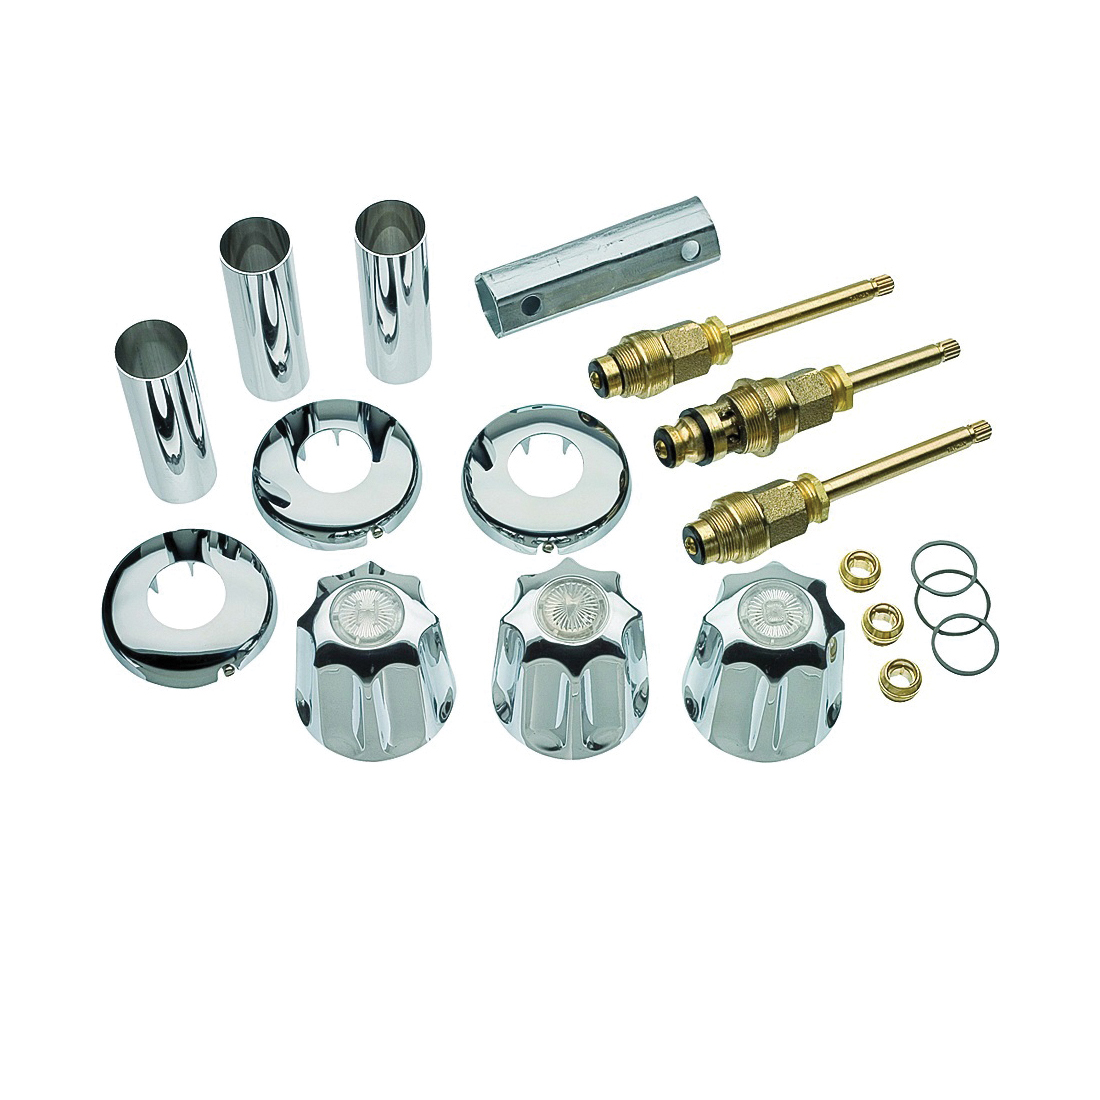 Picture of Danco 39617 Tub/Shower Remodeling Kit, Chrome, For: Gerber Faucets